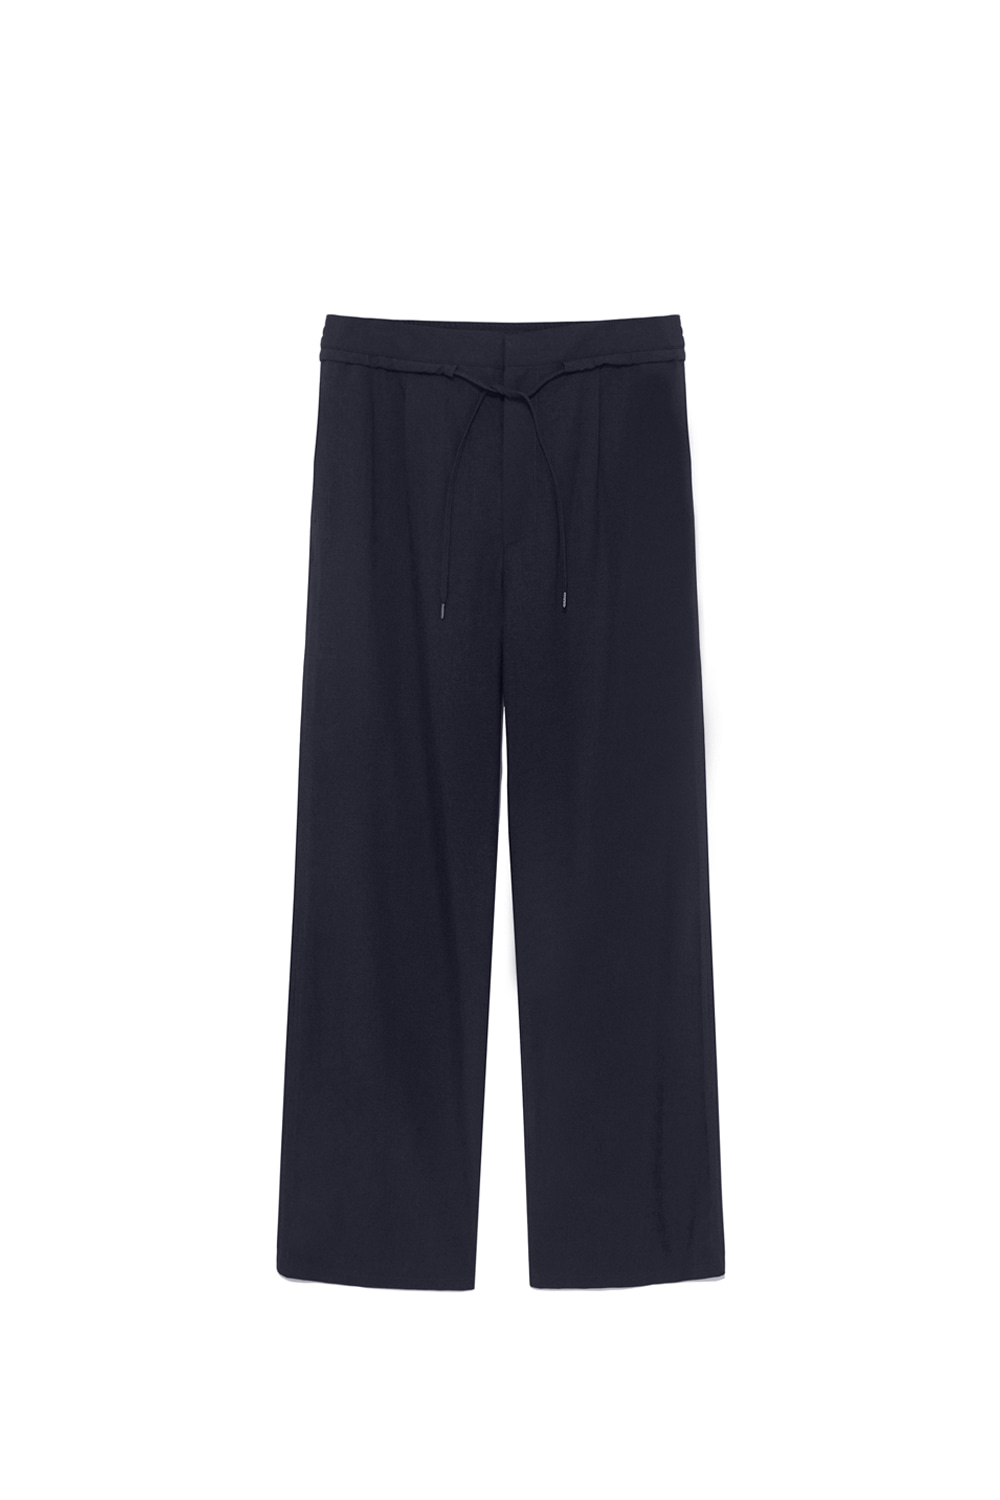 Summer Pants Men [Navy]